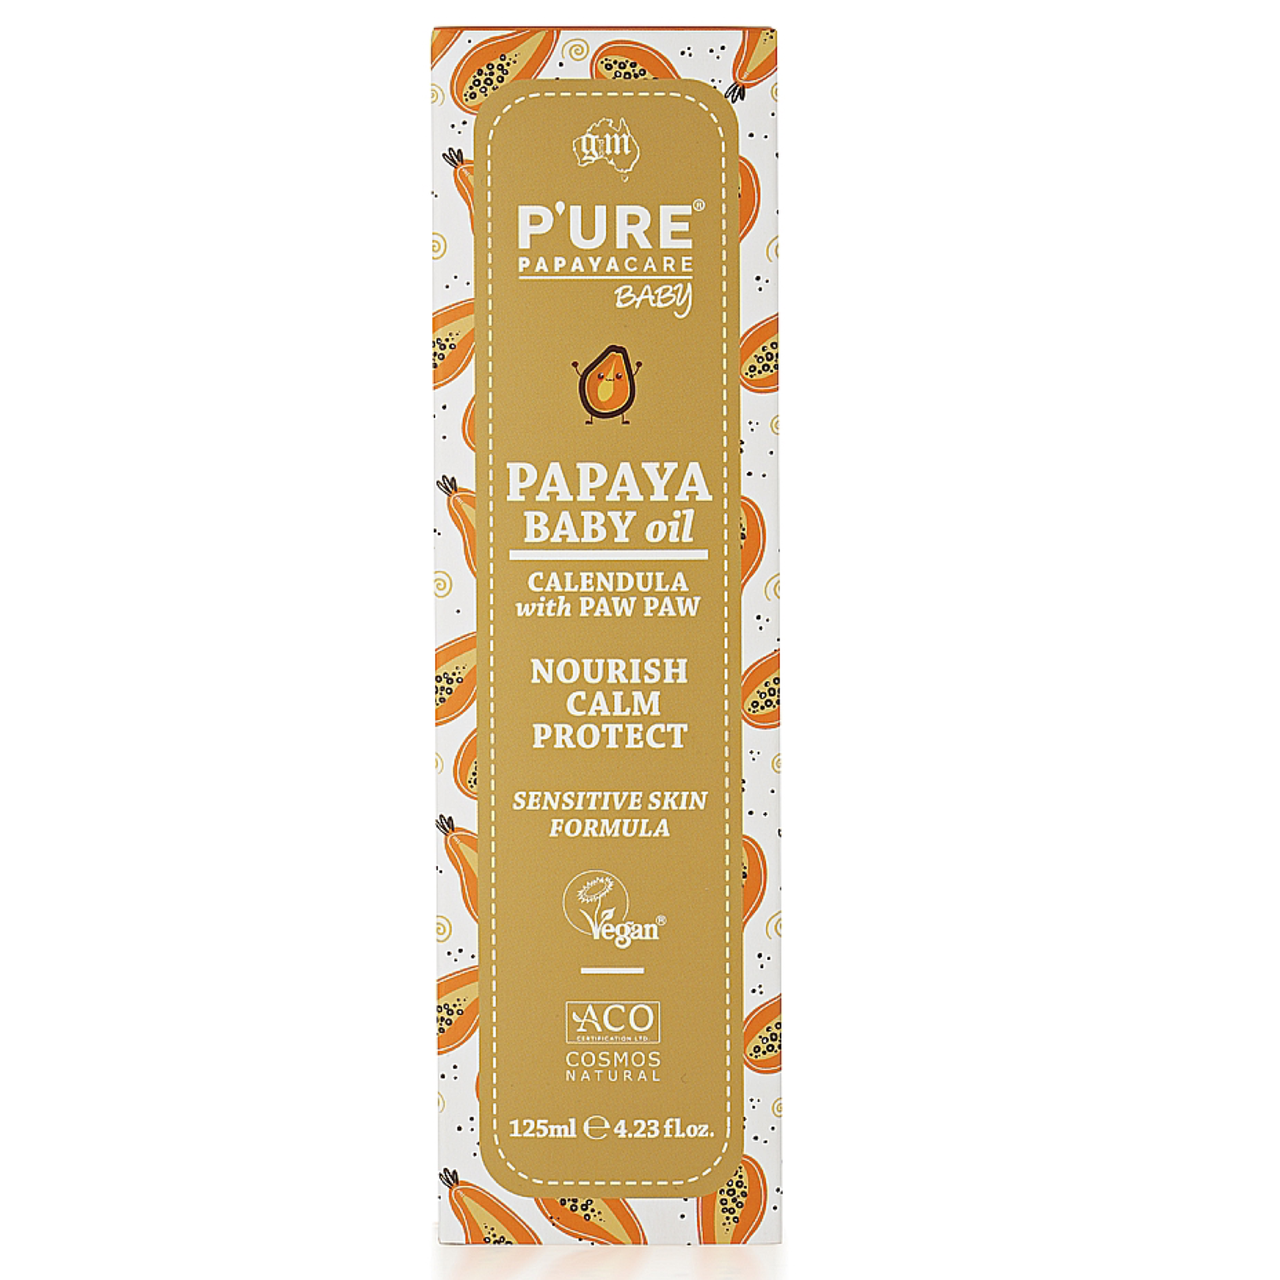 P'ure Papayacare Baby Oil Calendula with Paw Paw 125ml at Baby Barn Discounts Gently soothes, moisturises, nourishes and protects your baby's delicate skin.